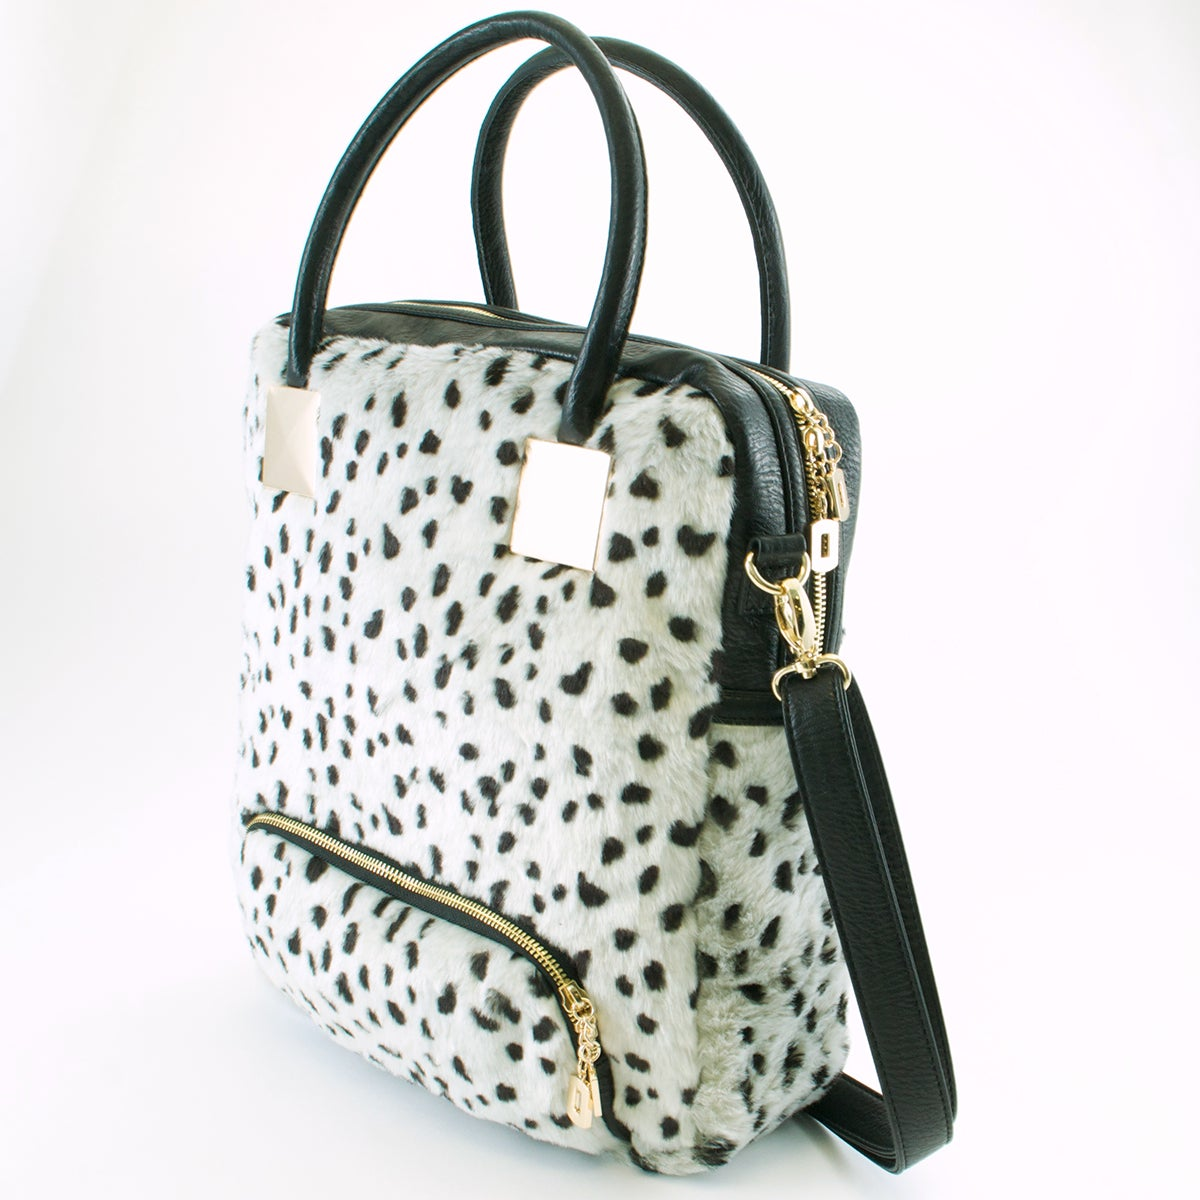 23dd79c982 Shop Adrienne Landau Snow Leopard Shopper Tote - Free Shipping Today -  Overstock.com - 8896246